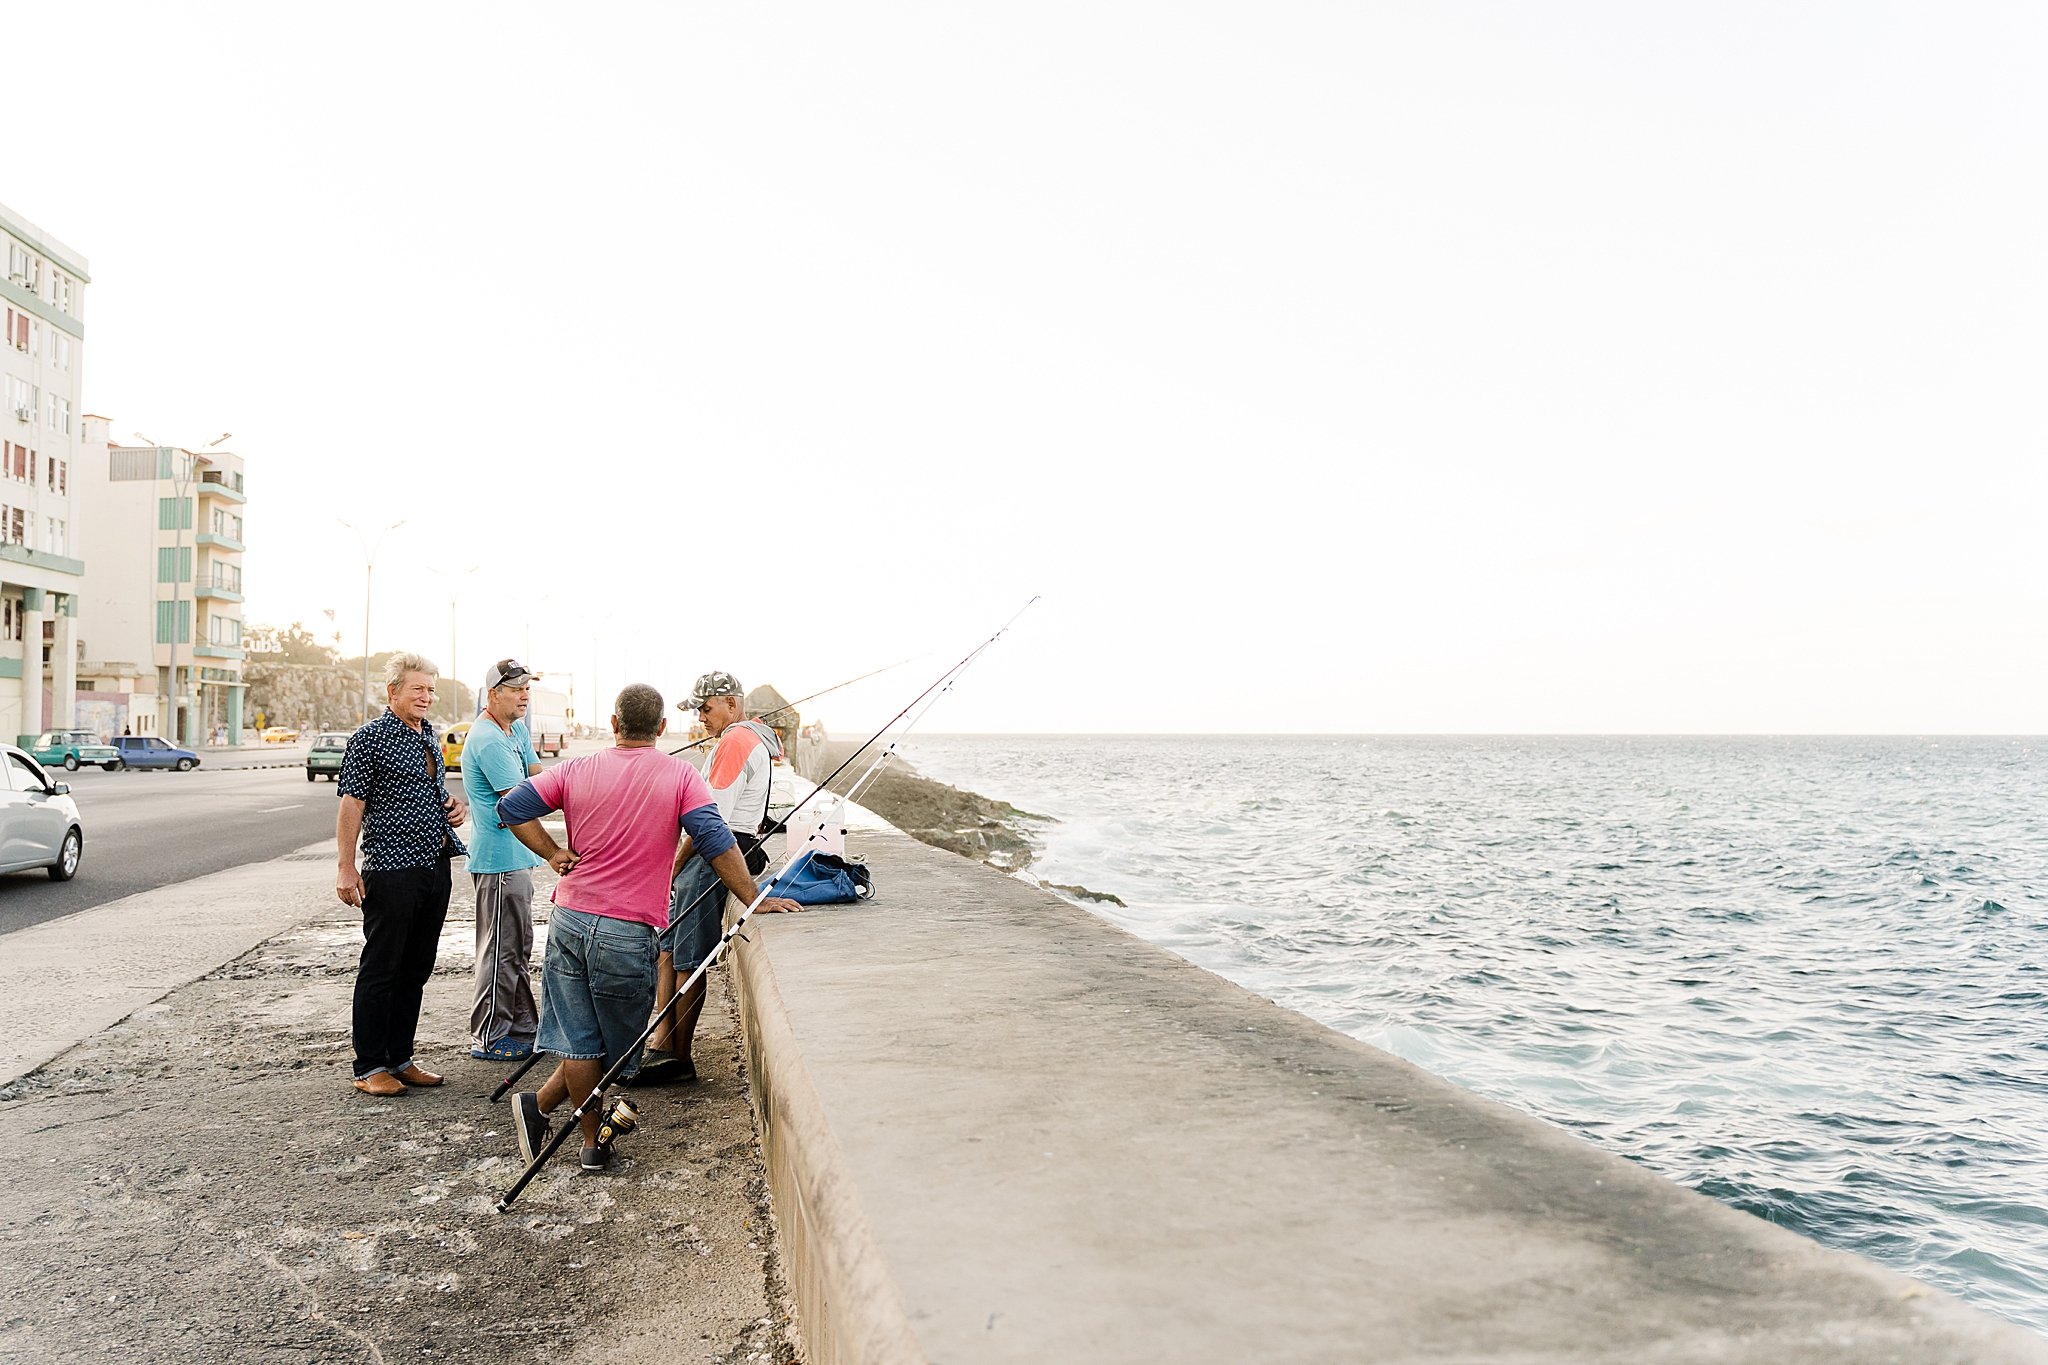 You'll find fisherman at El Malecon, Havana Cuba.